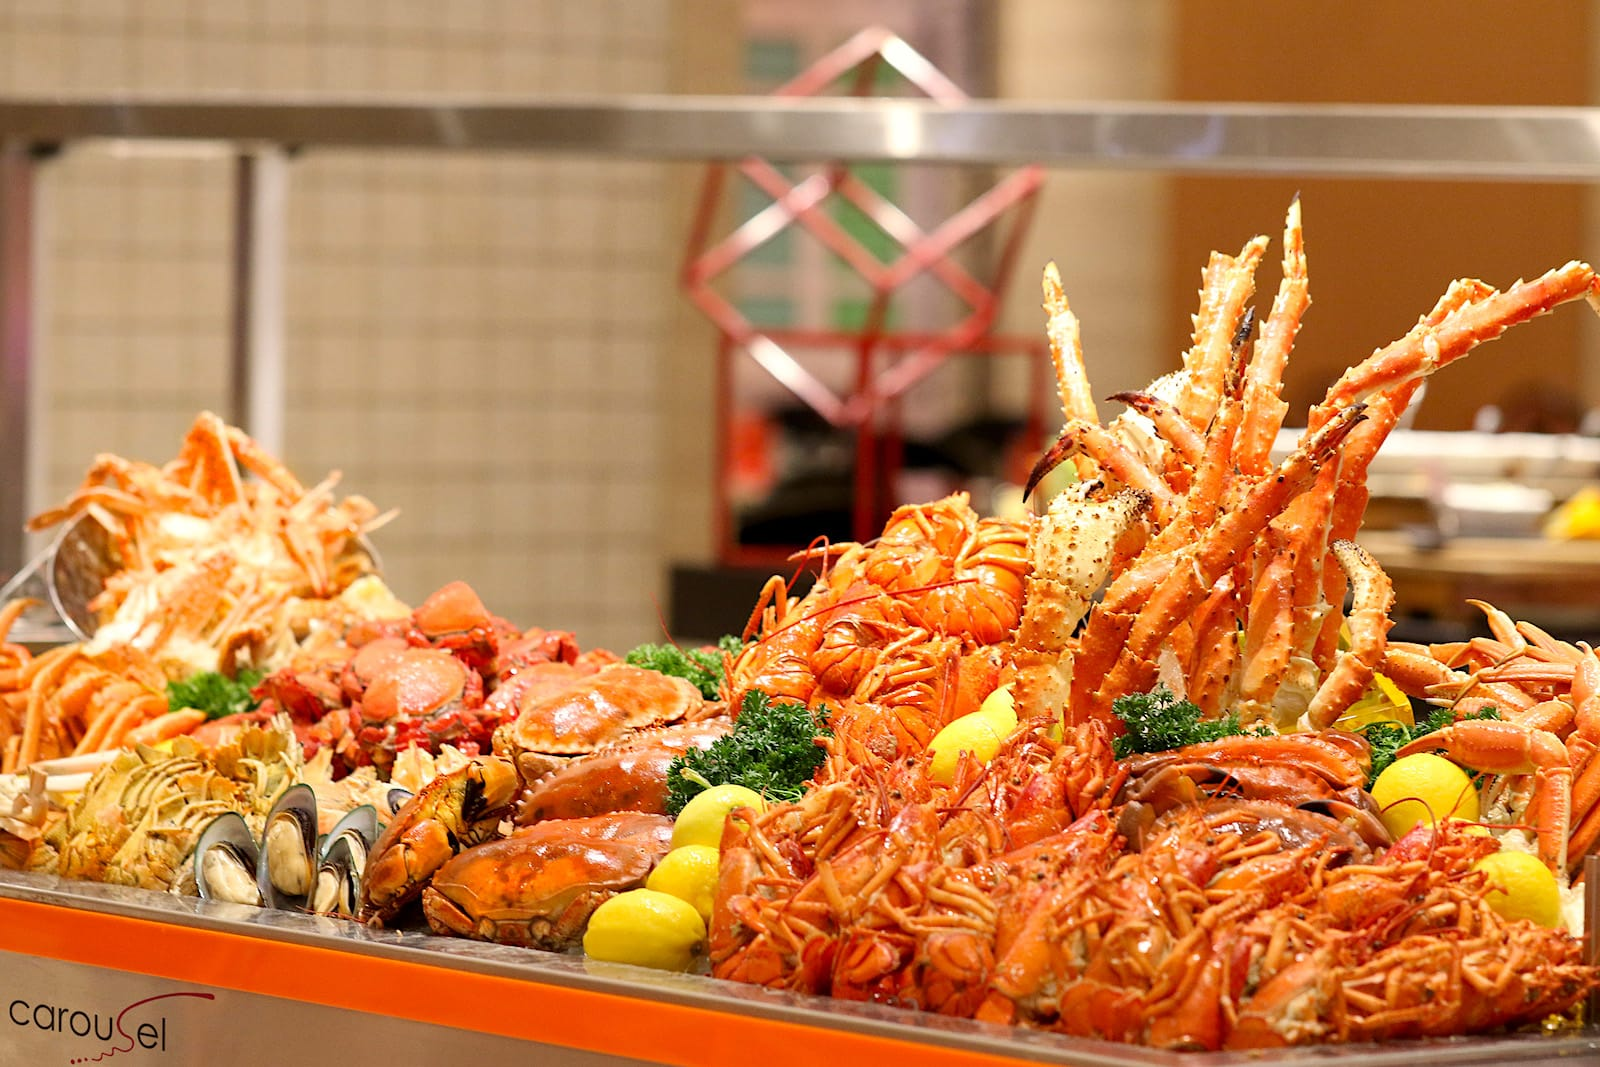 Crab and Lobster Seafood Buffet at Carousel, Royal Plaza on Scotts |  CAMEMBERU